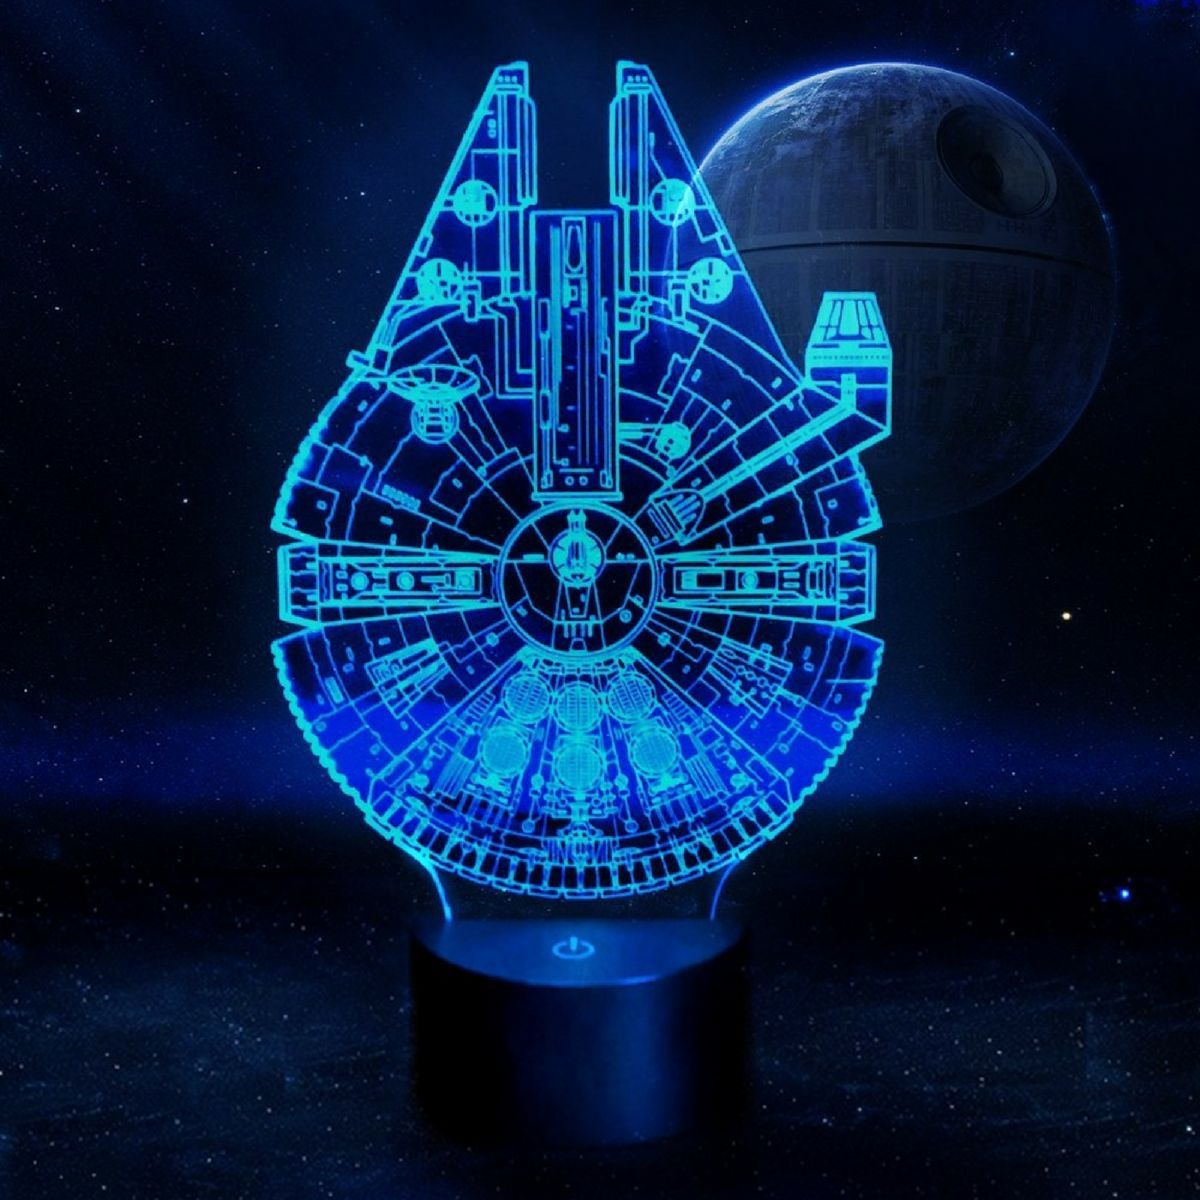 7 Color 3d Star Wars Millennium Falcon Led Lamp Millennium Falcon Star Wars Gifts Metal Earth